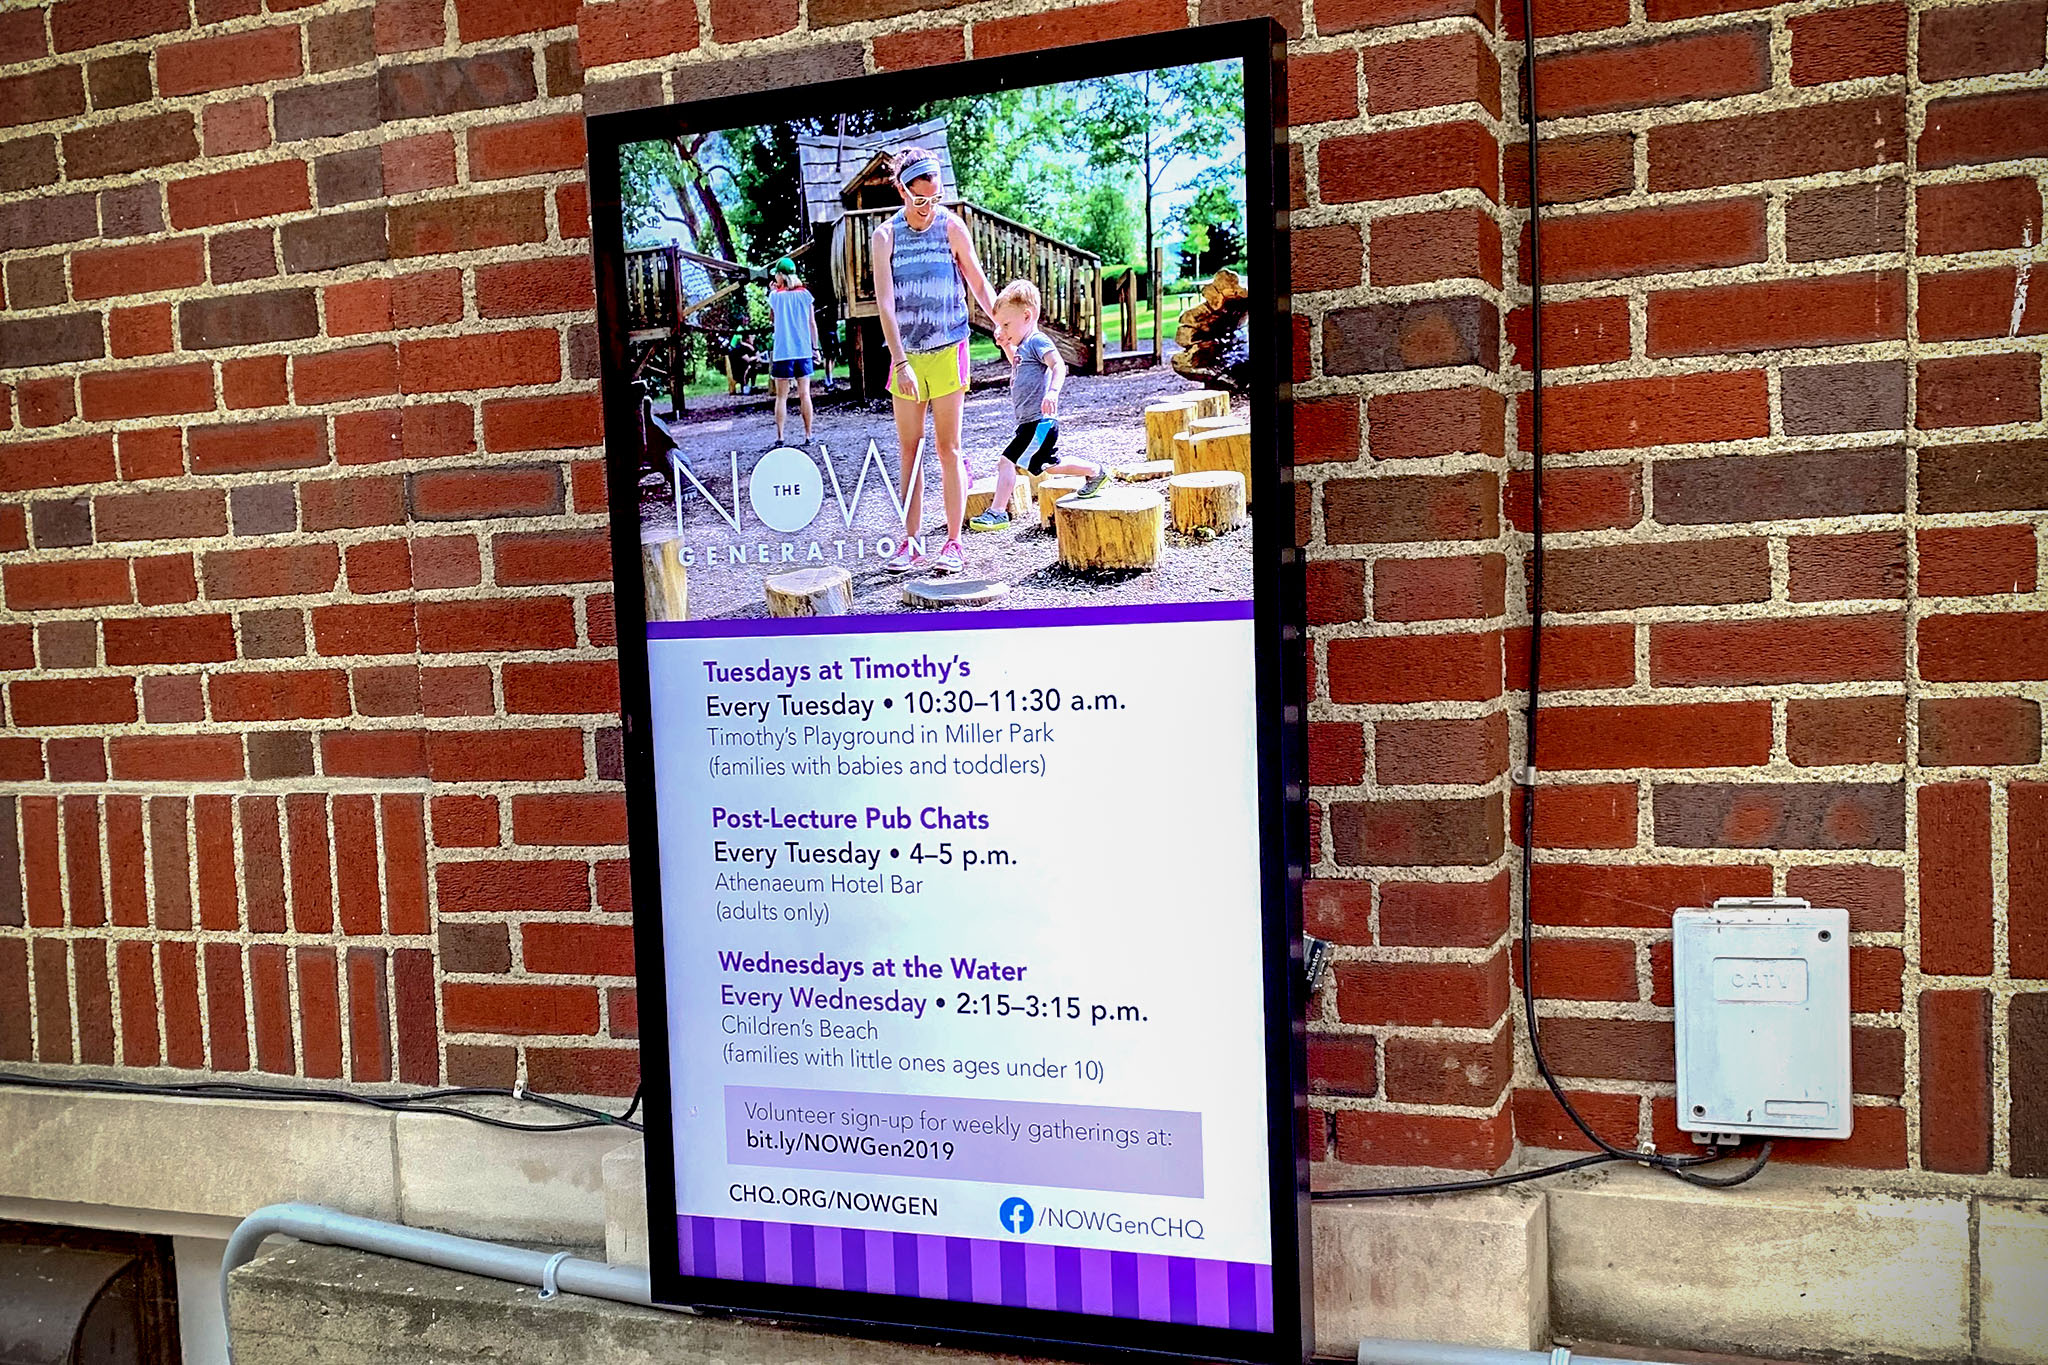 Outdoor display of digital signage